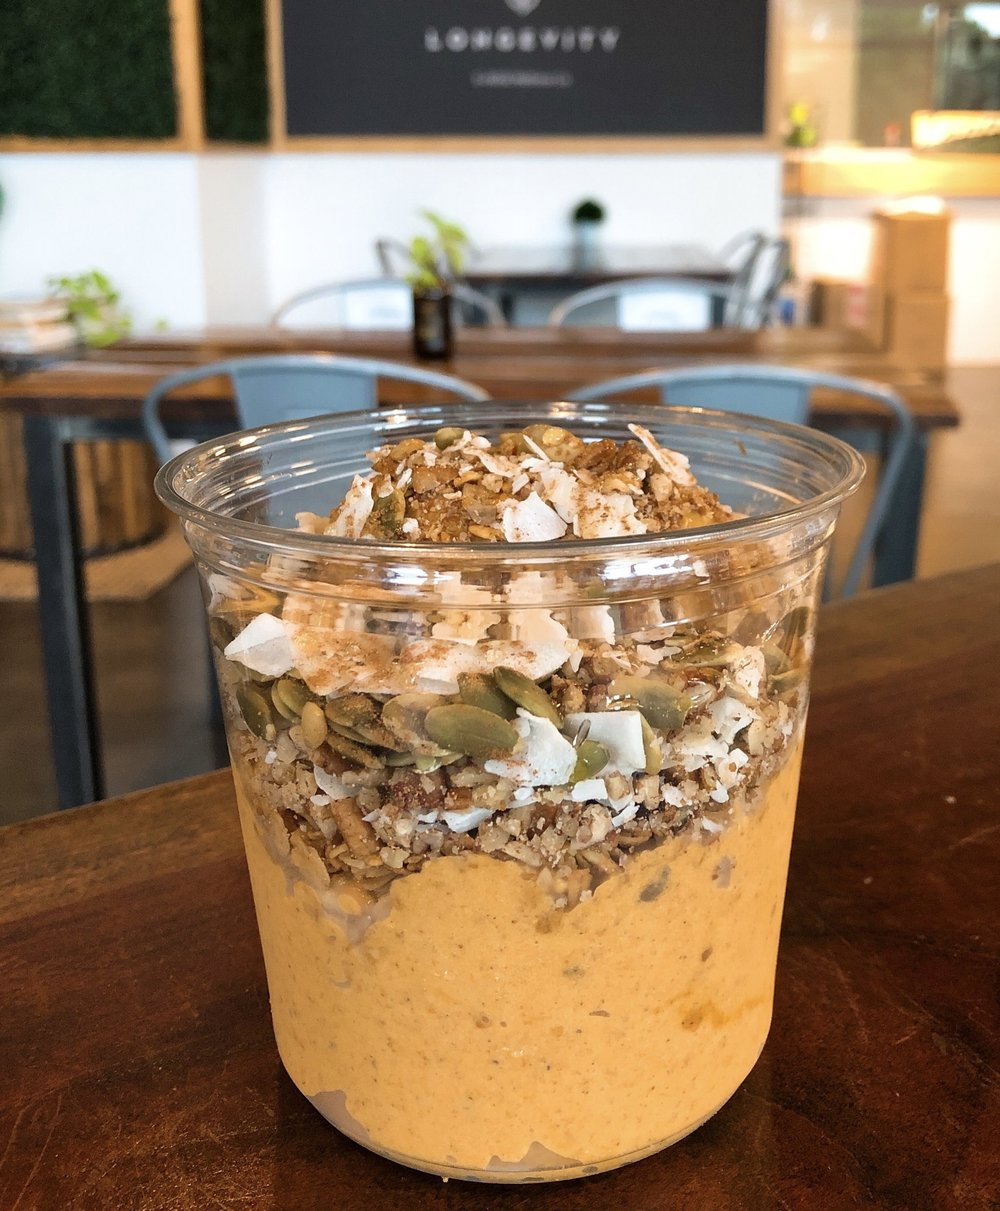 """'The Great Pumpkin Bowl' - From E+ROSE Wellness Cafes, this nutrition powerhouse is loaded with vitamins, minerals and superfoods. It also packs a great combo of carbohydrates, fats, and protein. We've got pumpkin (carb), banana (carb), coconut milk (fat), almond butter (fat, protein), pecans (fat, protein) and some other great additions like cinnamon, nutmeg and vanilla that provide health benefits beyond the """"basics"""" we're talking about here."""